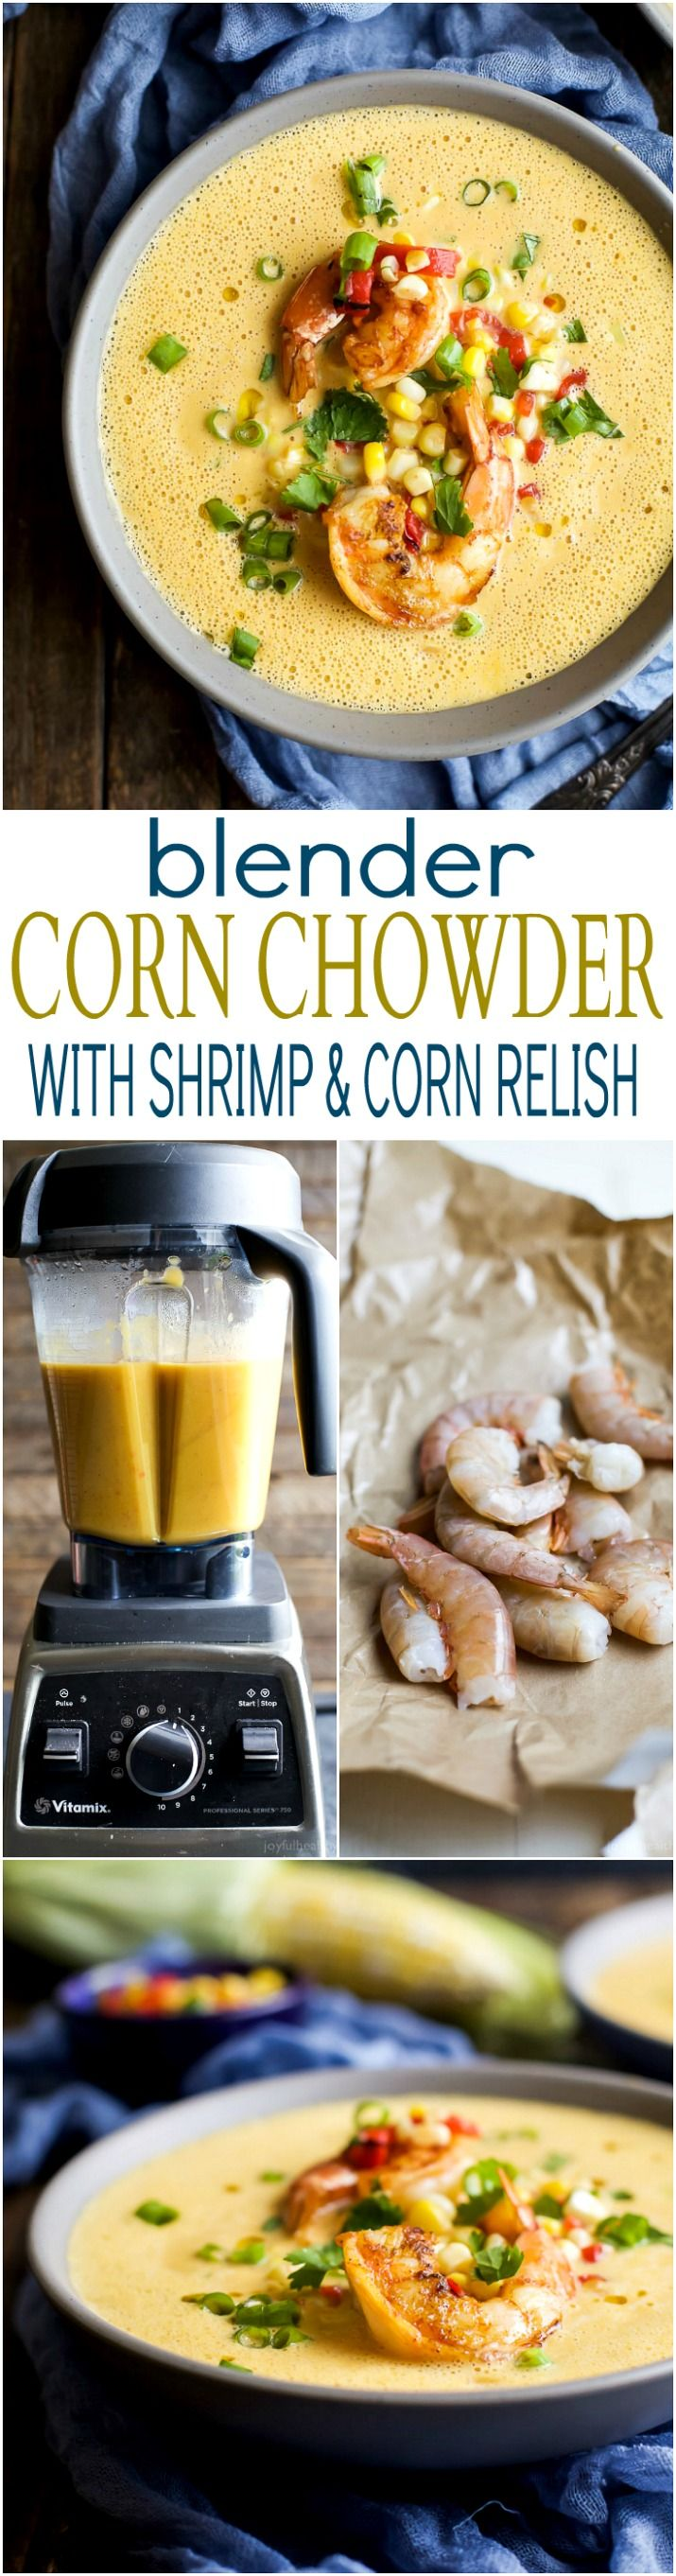 Fall perfection! This Blender Corn Chowder with Pan Seared Shrimp and Corn Relish is healthy, filled with rich flavors, done in 30 minutes and paleo! You're gonna fall in love! | joyfulhealthyeats.com #glutenfree #ad